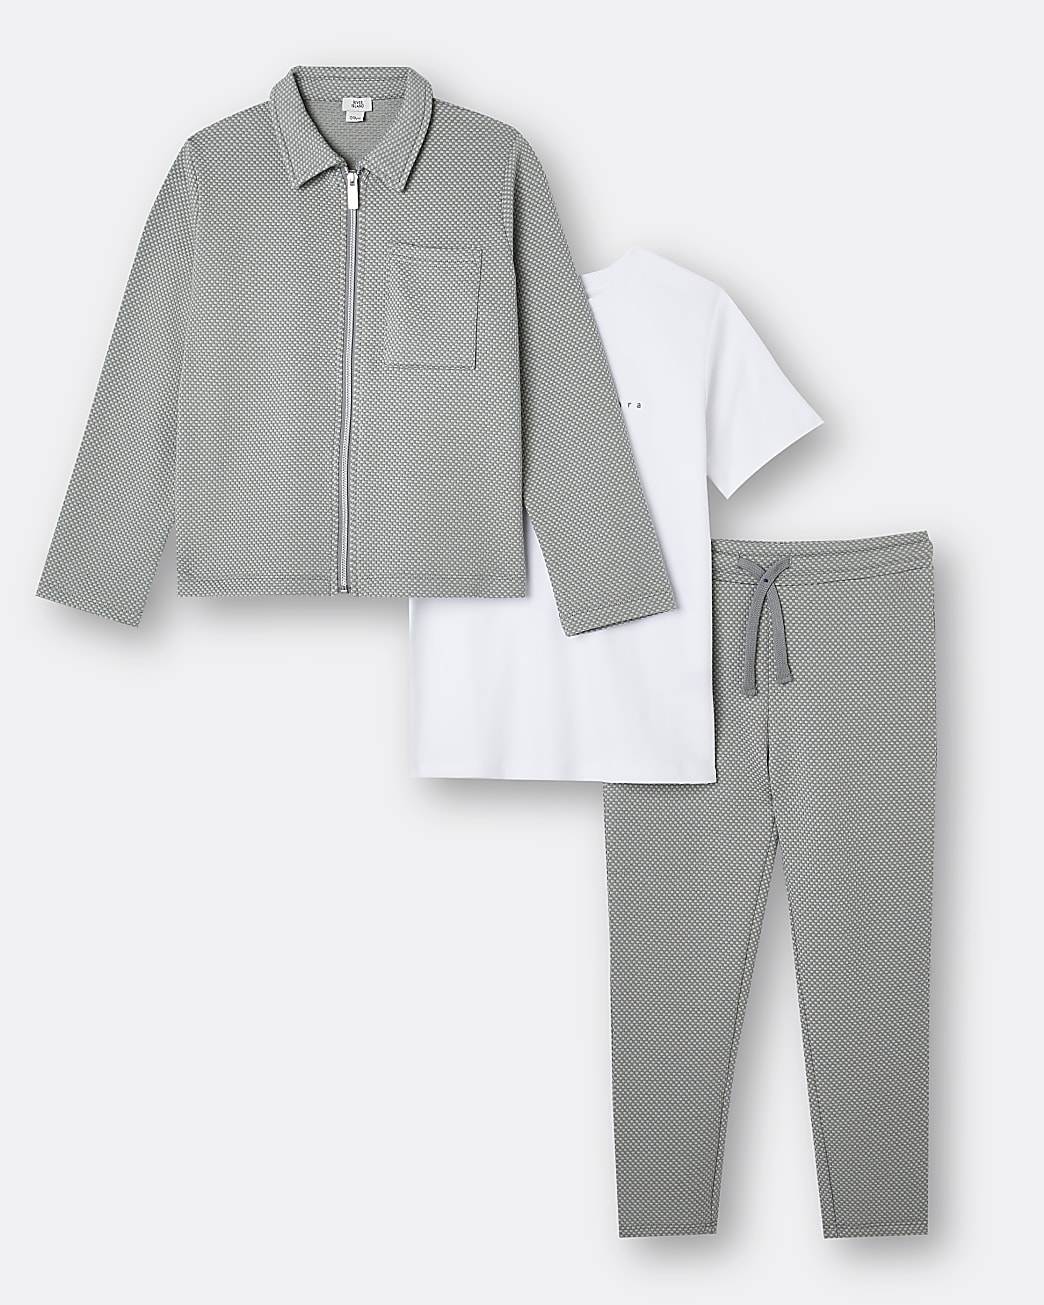 Boys green Maison Riviera jogger outfit